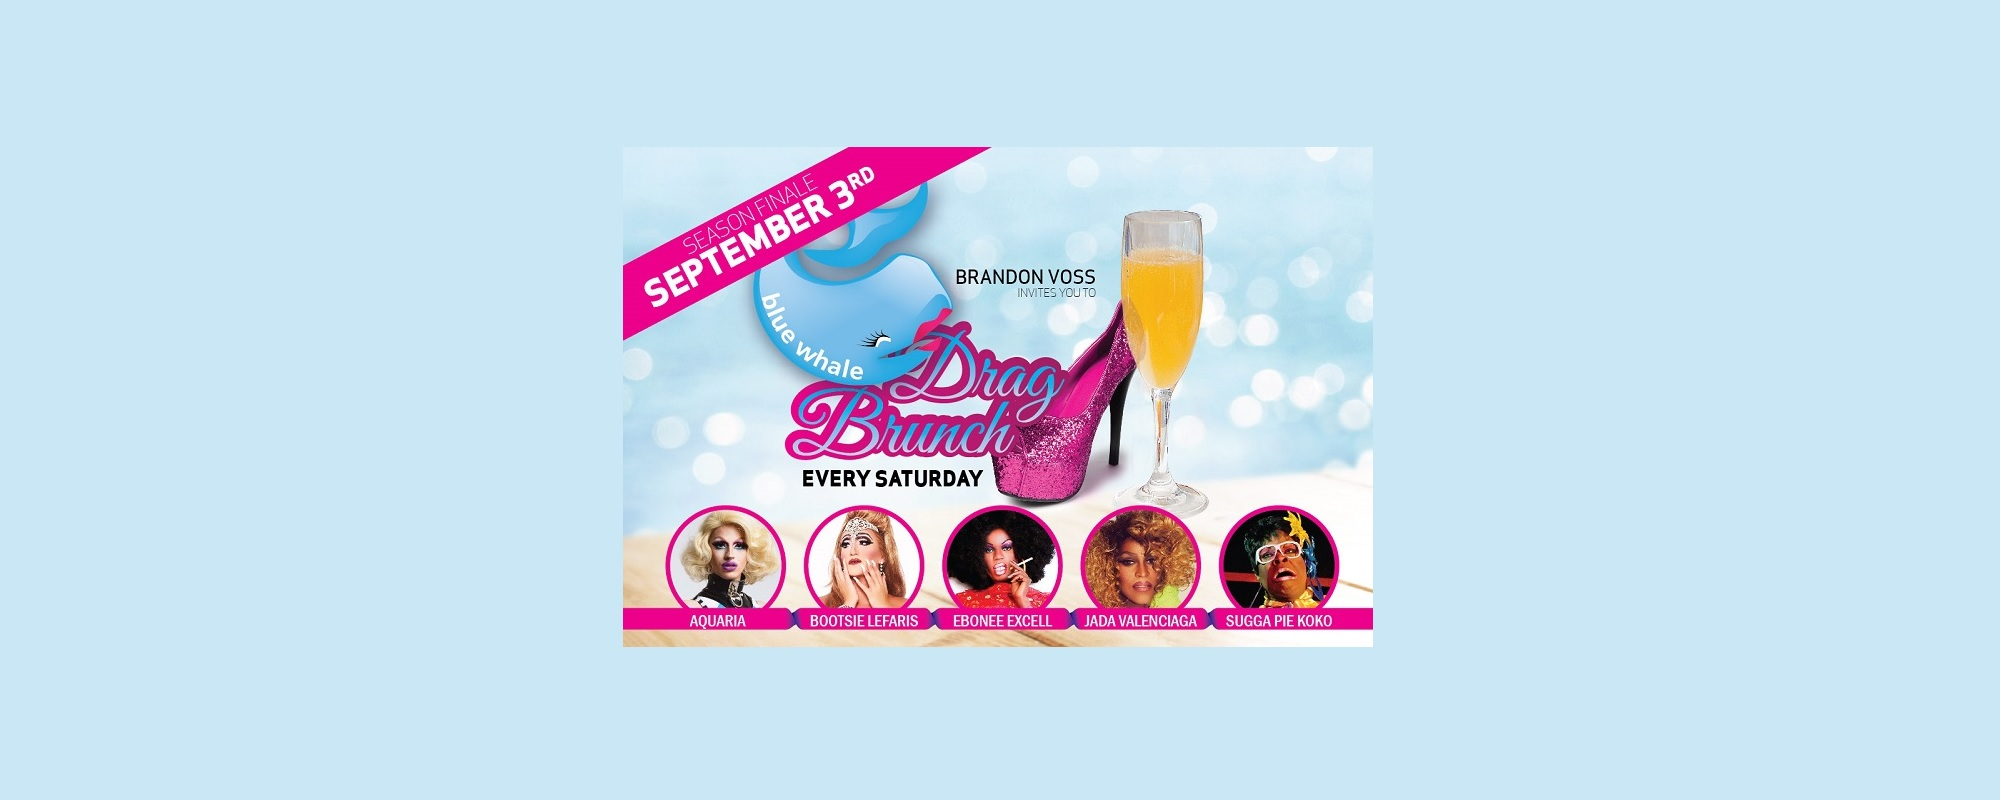 DragBrunch_LaborDay-Homepage